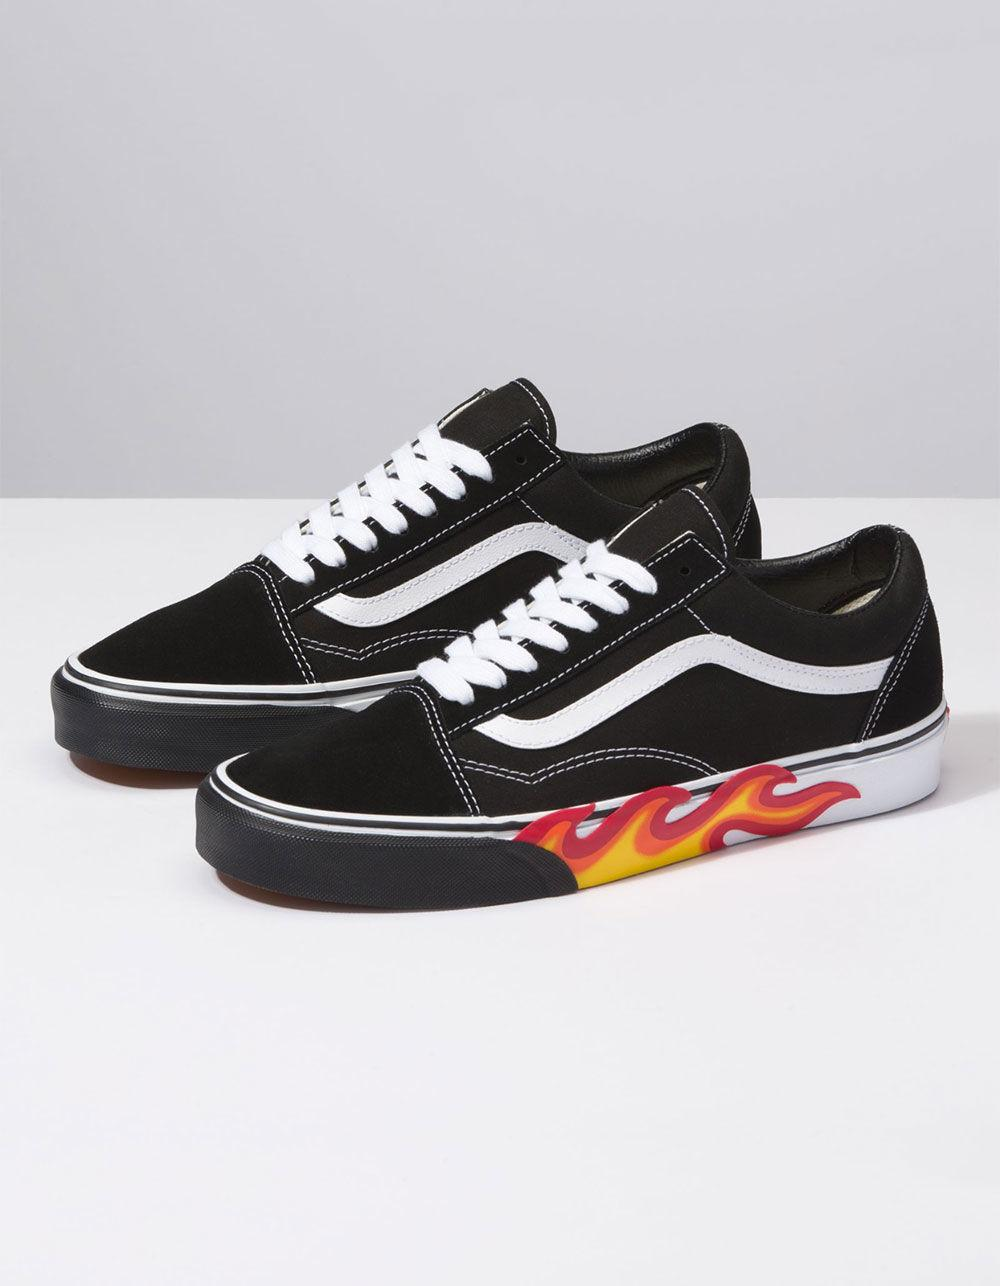 fdde999b485 Lyst - Vans Flame Cut Out Old Skool Shoes in Black for Men